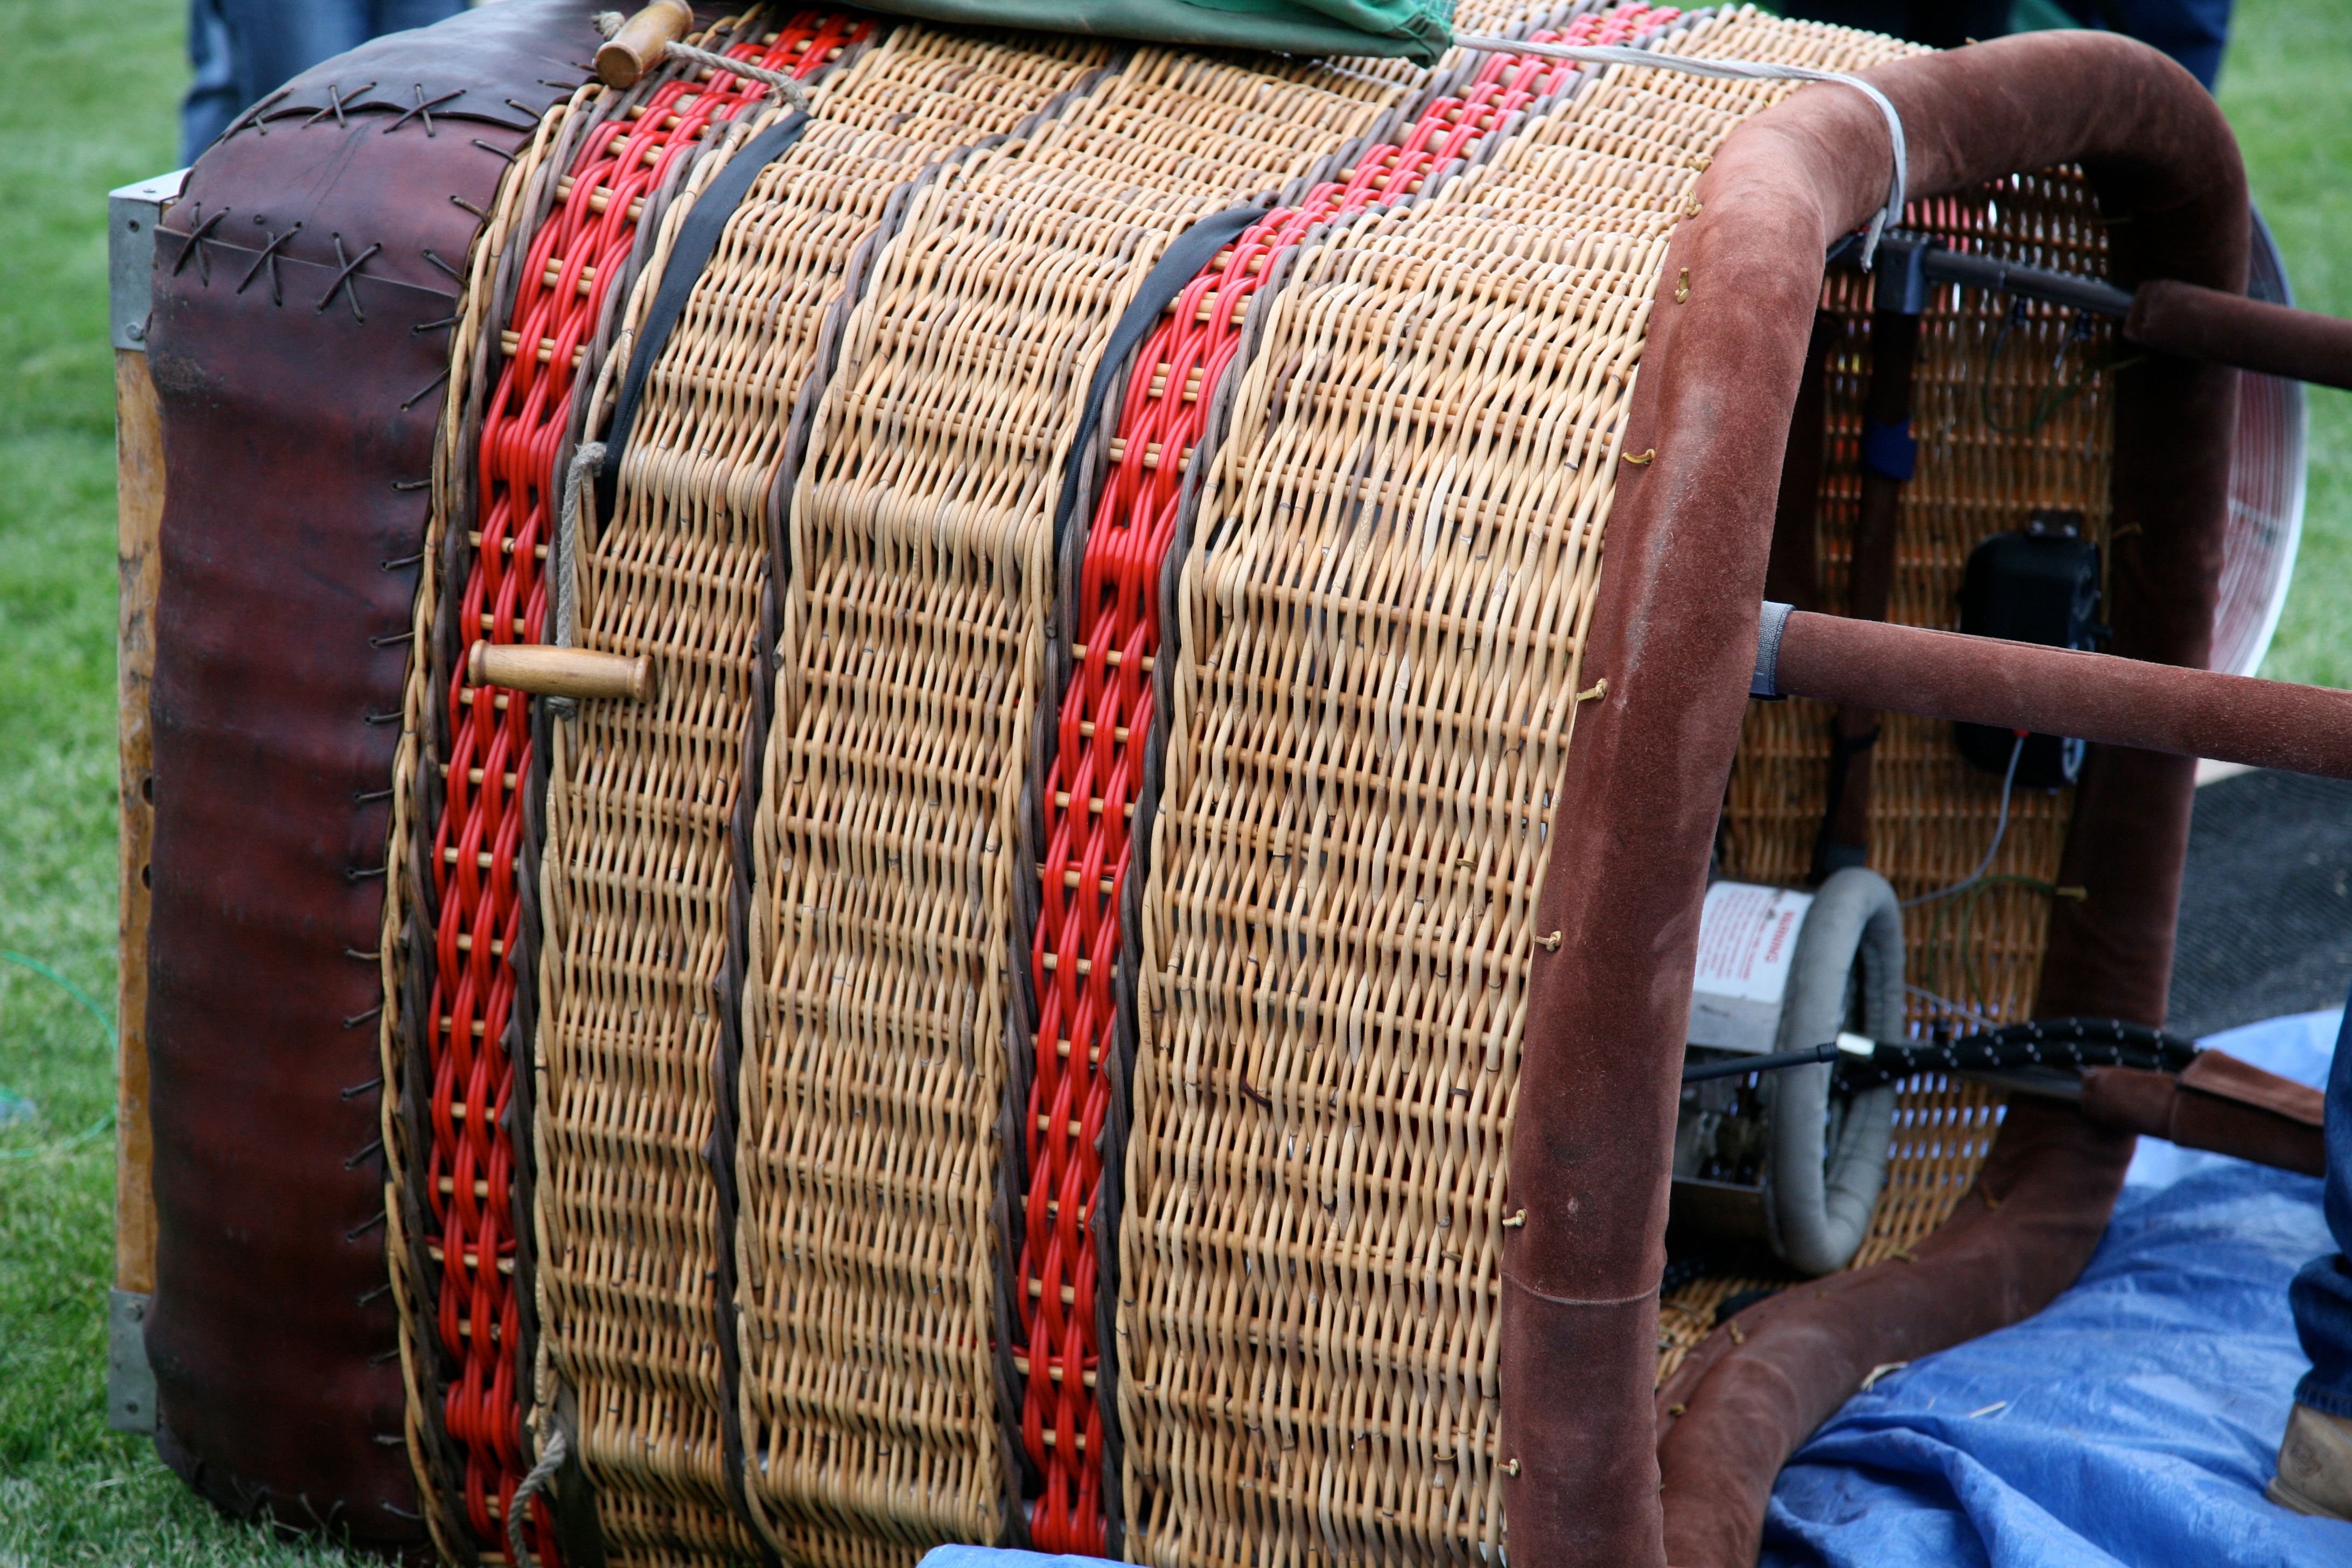 a tisket tasket red and tan basket author luc lucke charlie